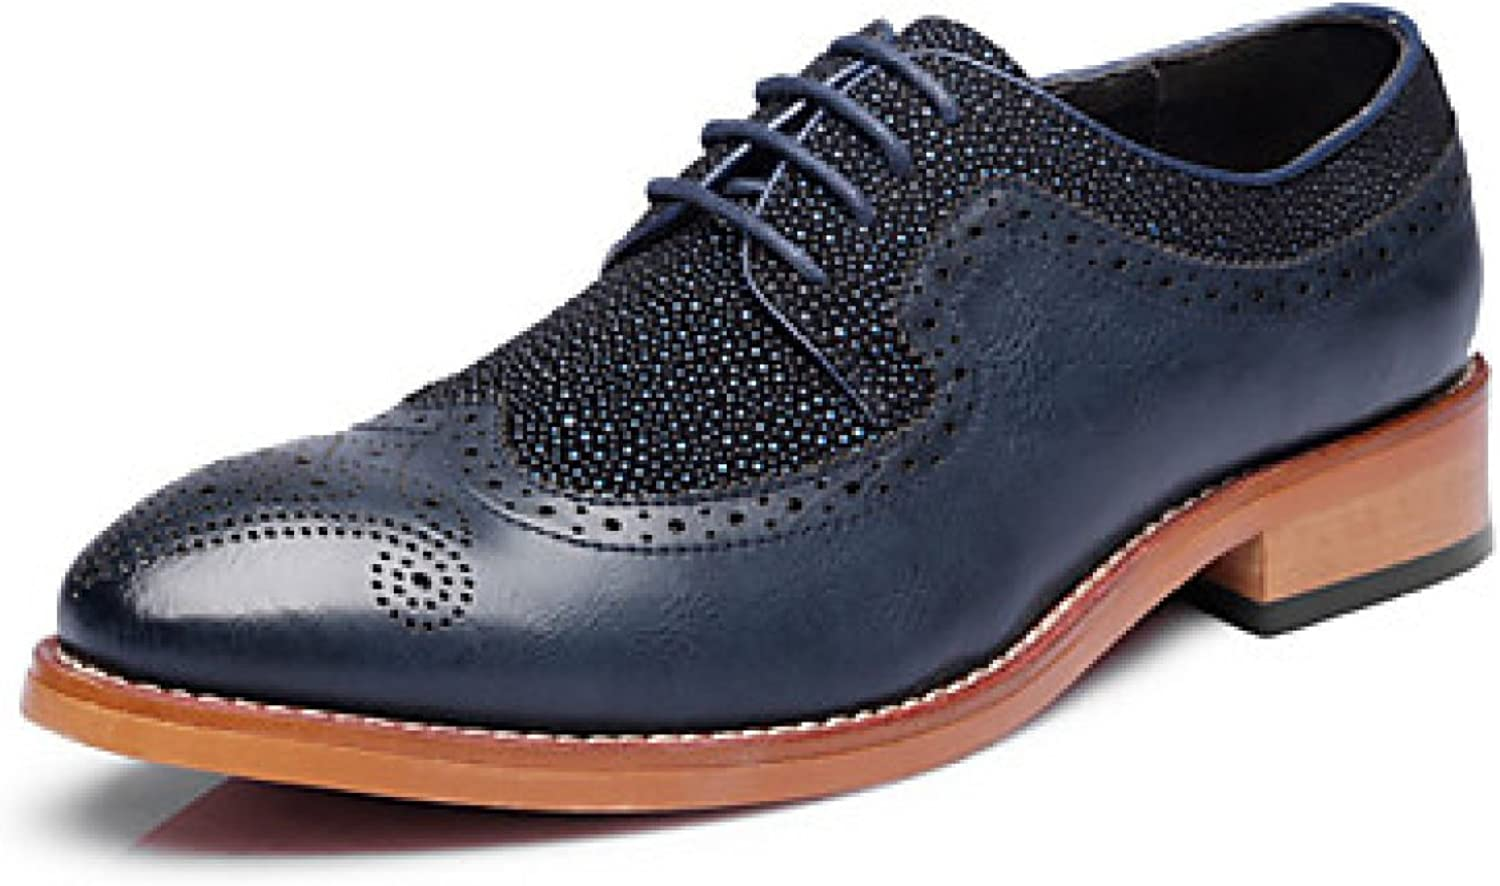 Men's shoes Office Career Party Evening Casual Leather Oxfords